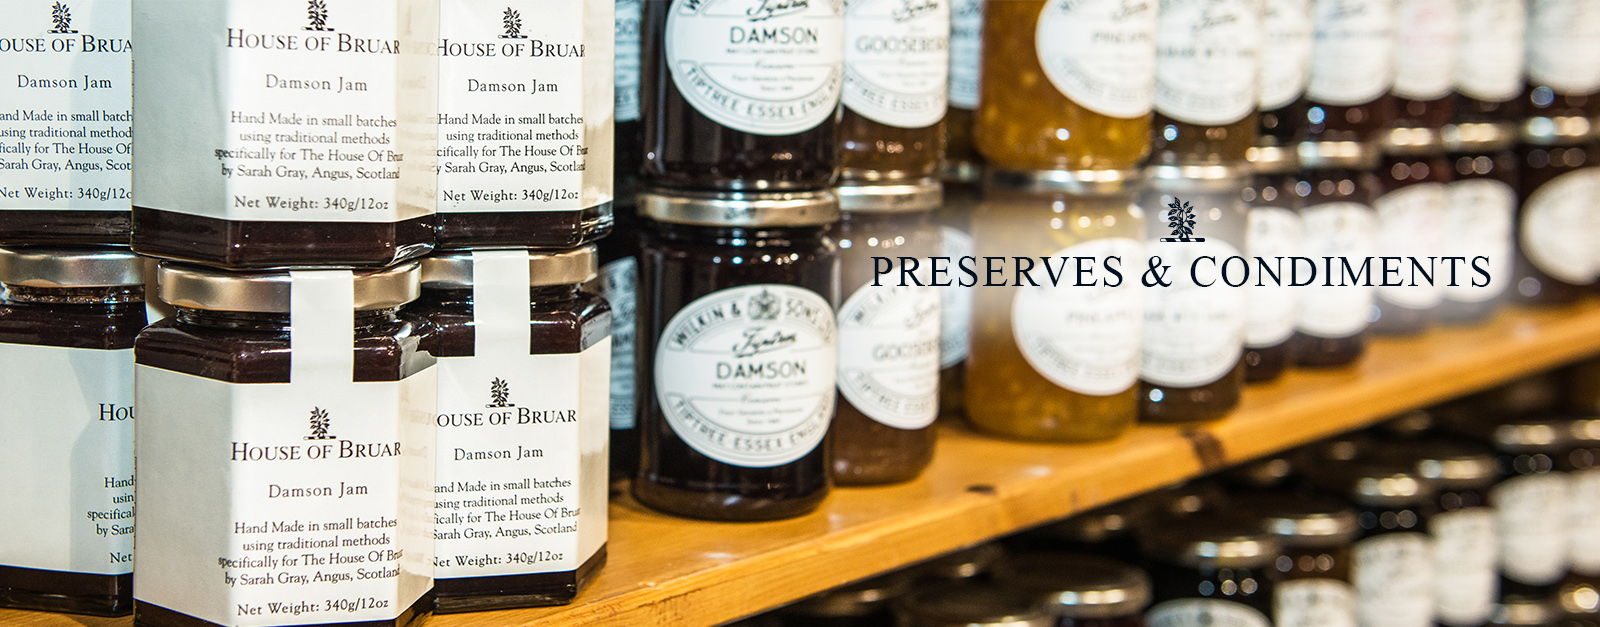 Preserves & Condiments